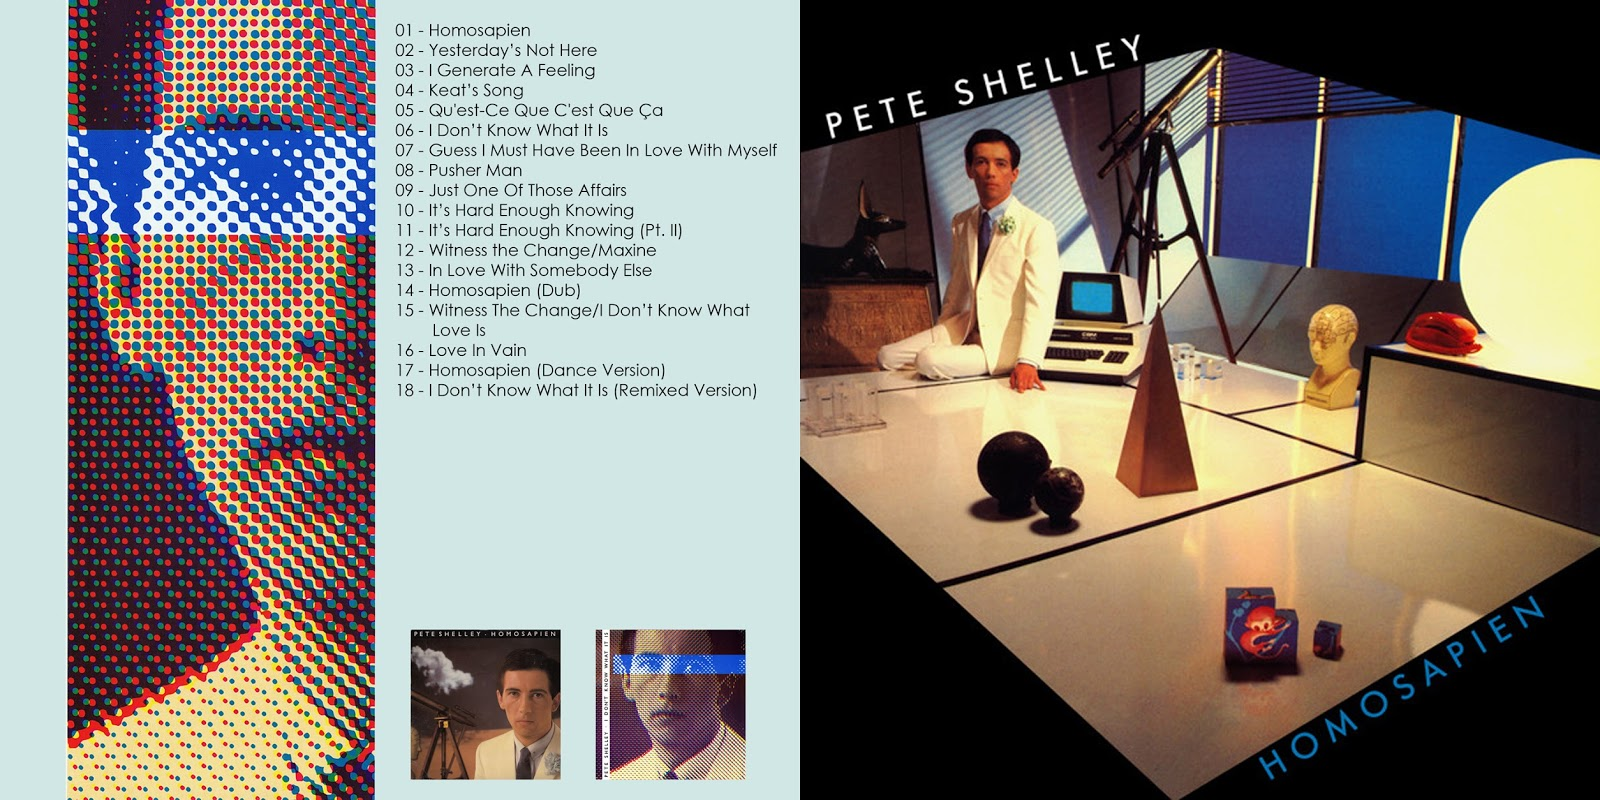 All the Air In My Lungs: Pete Shelley - Homosapien - 1981